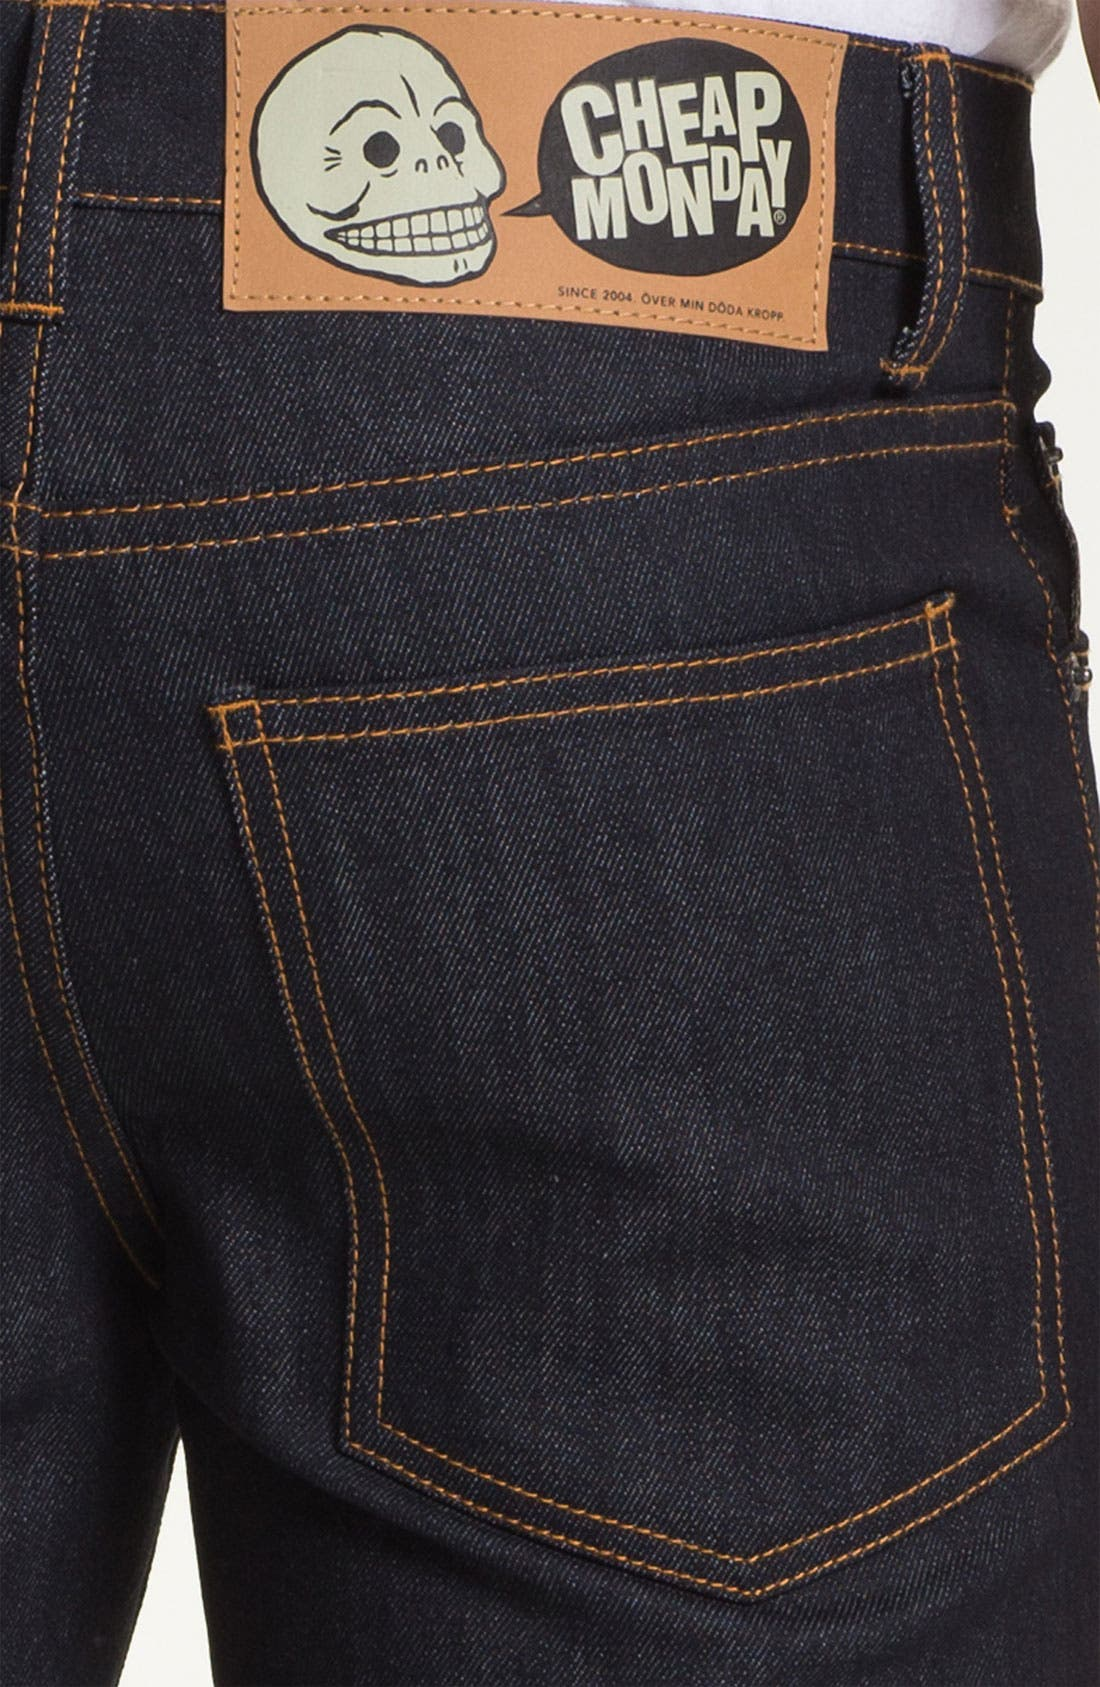 Alternate Image 4  - Cheap Monday Slim Straight Leg Jeans (Original Unwashed)